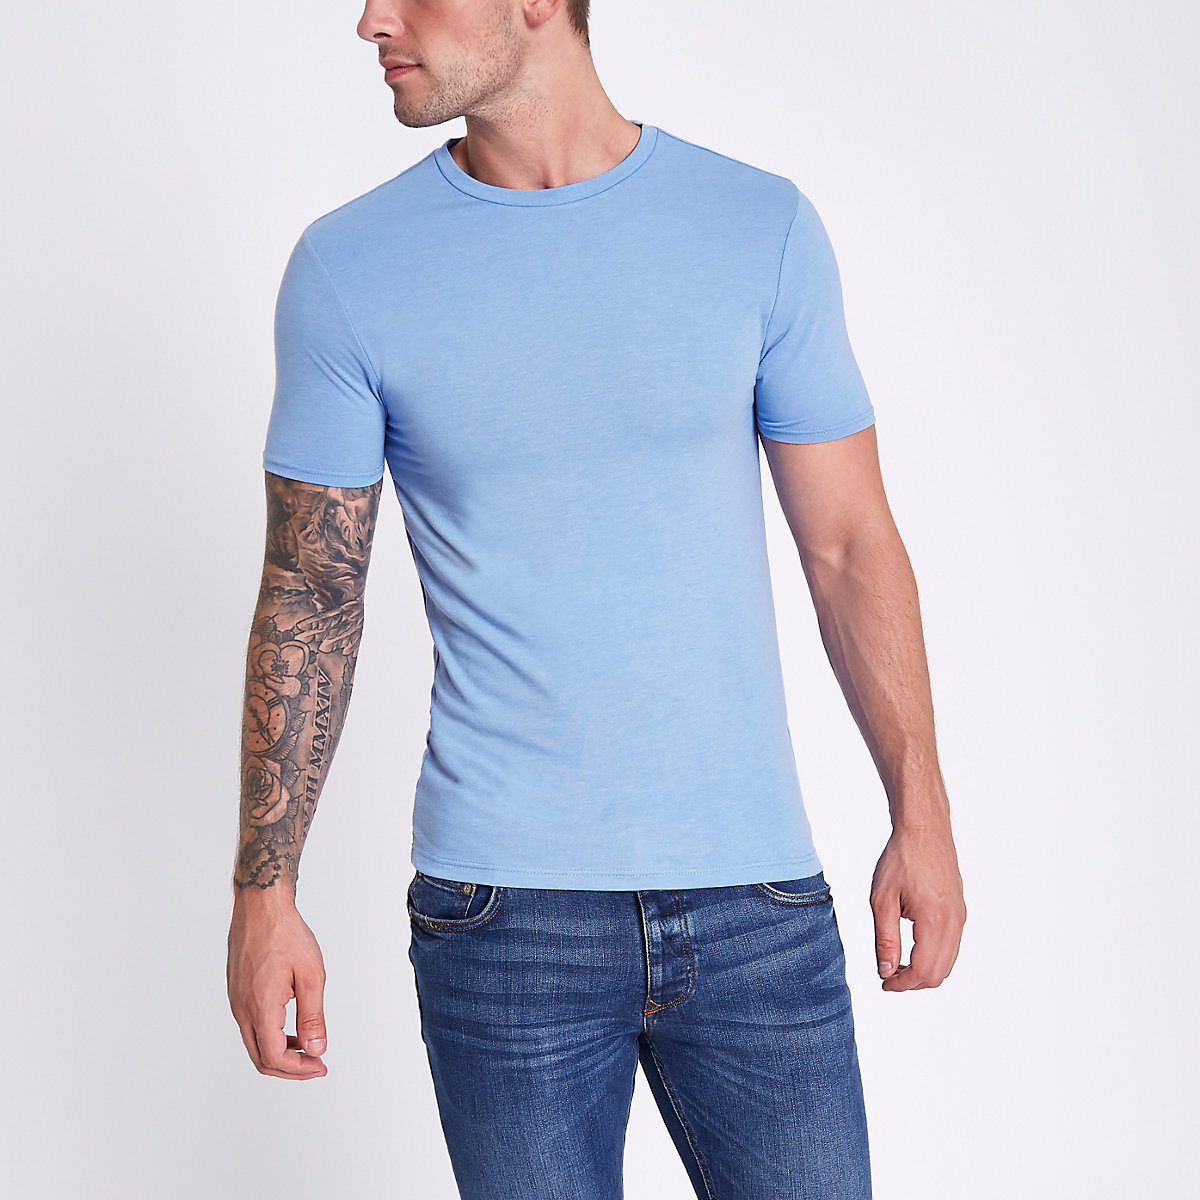 Blue marl muscle fit crew neck T-shirt